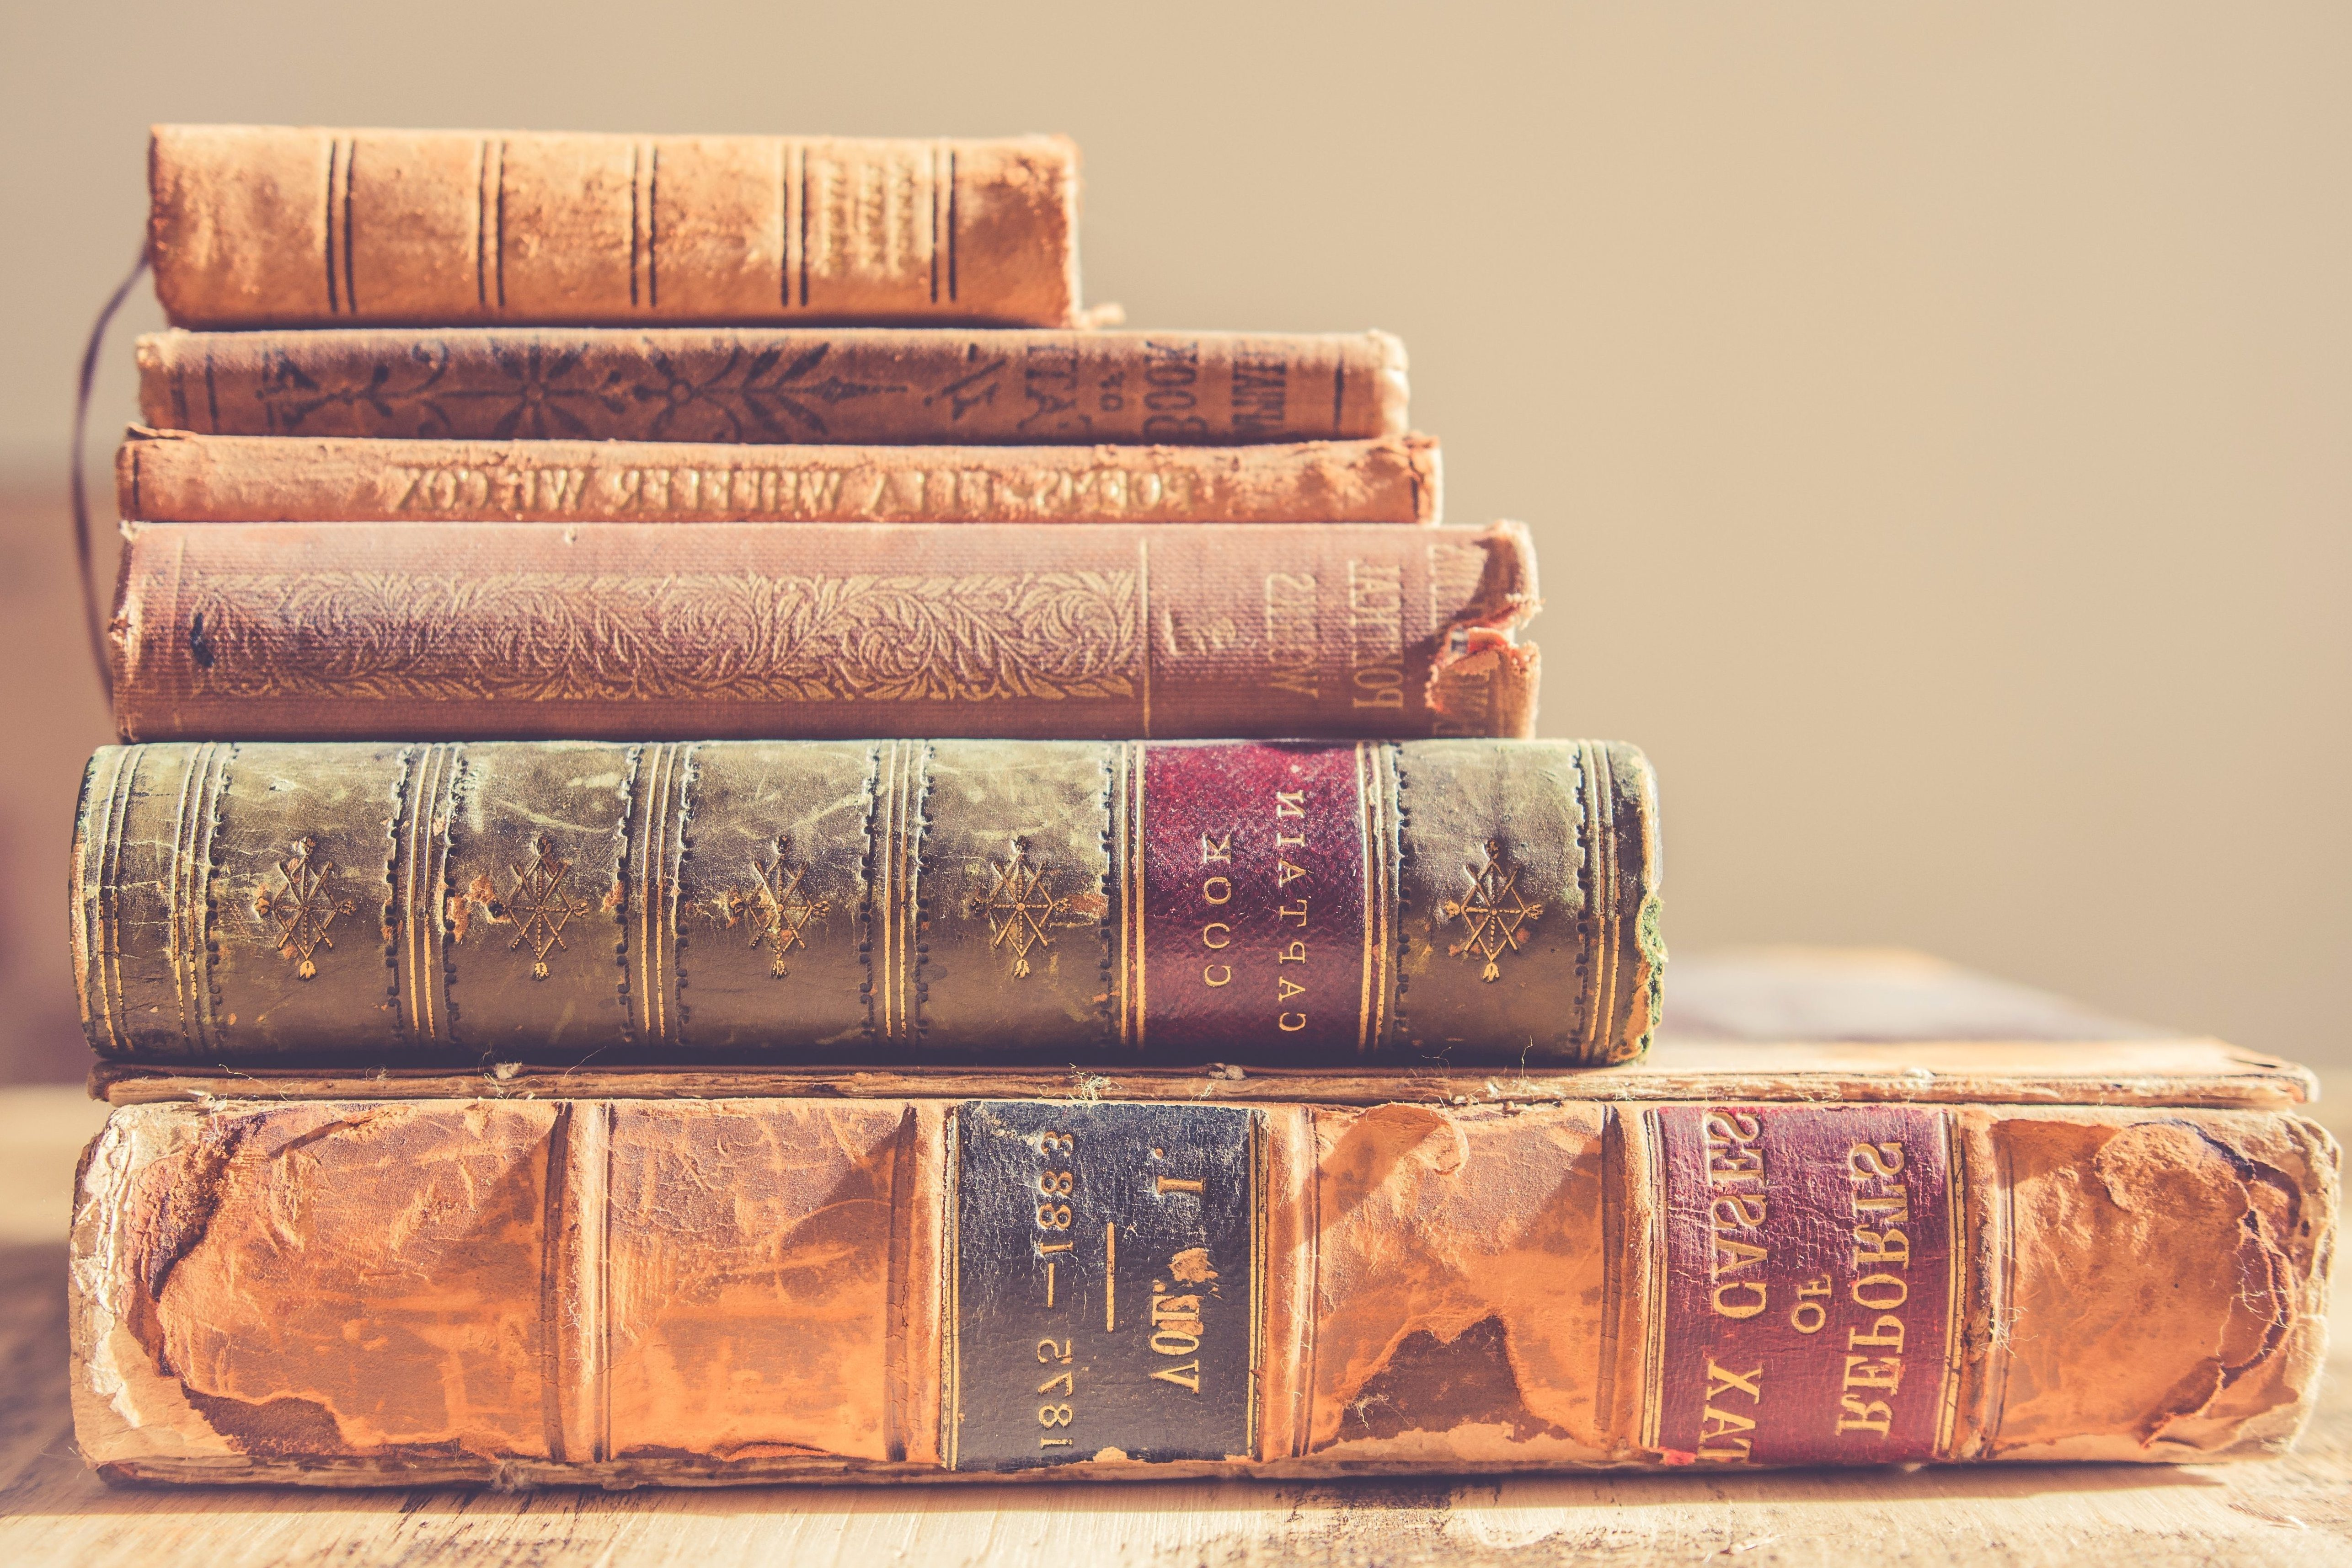 Free picture: antique, book, old, bookshelf, colorful